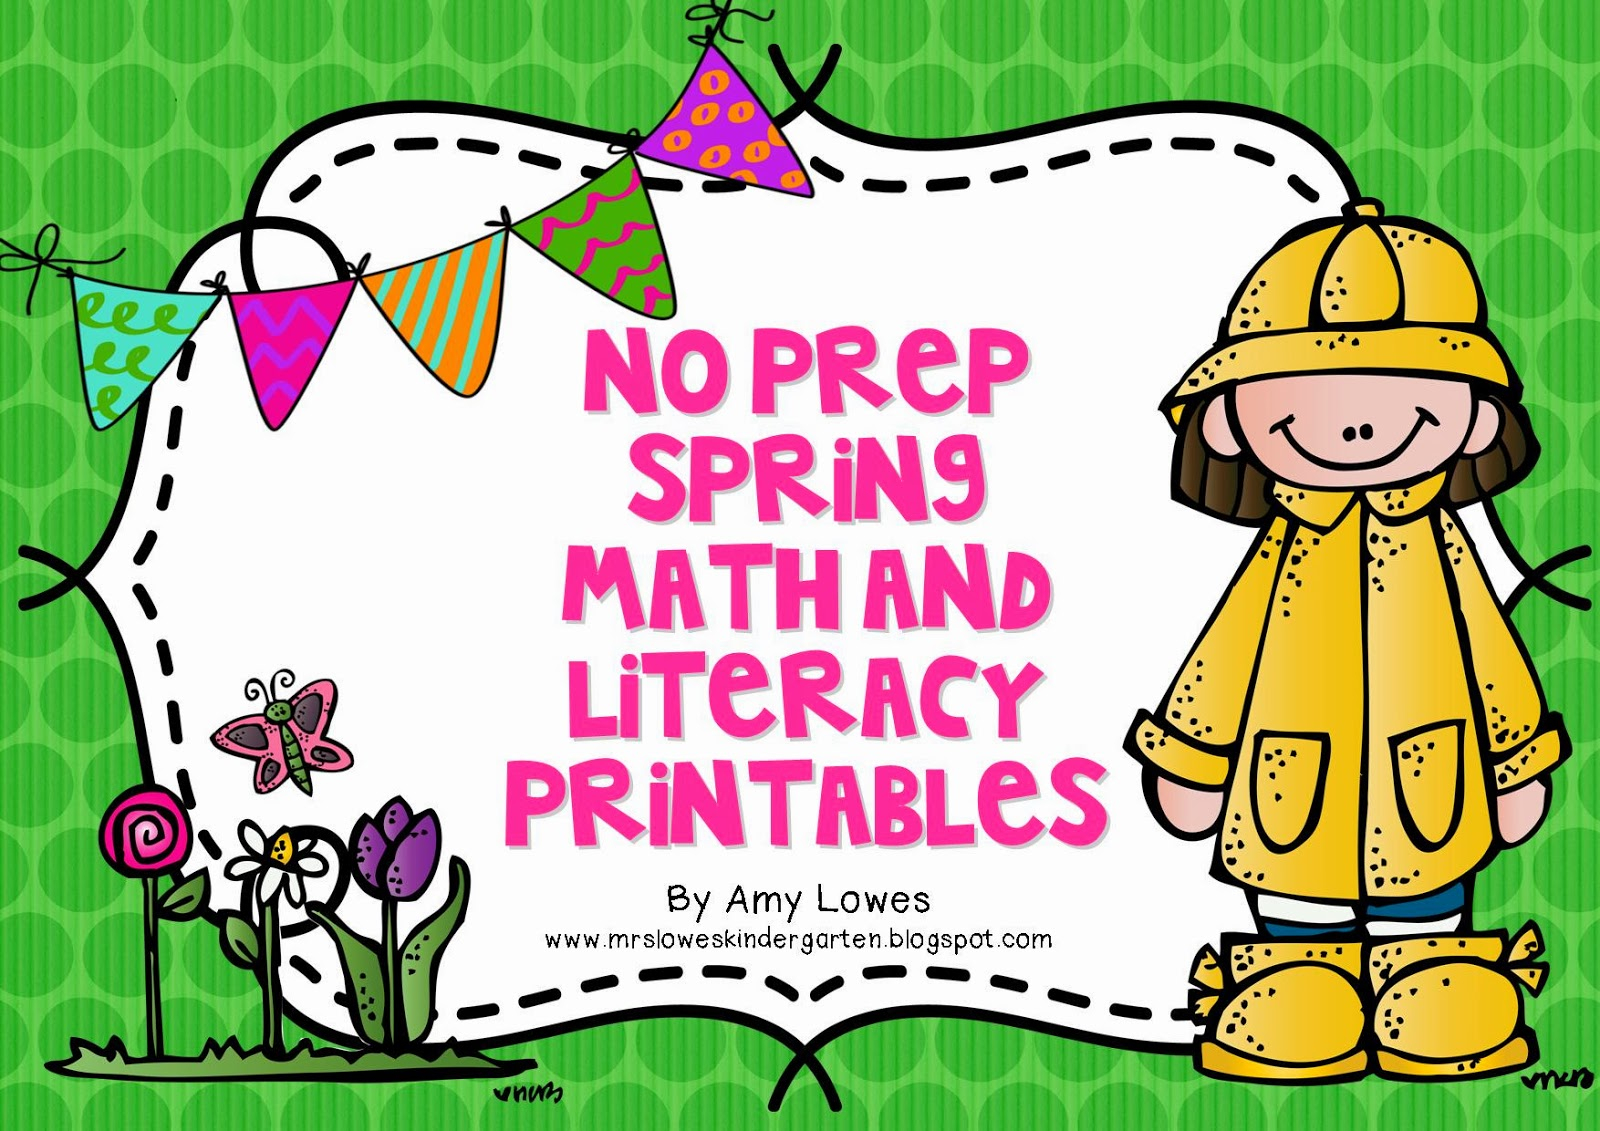 No Prep Spring Math and Literacy Printables